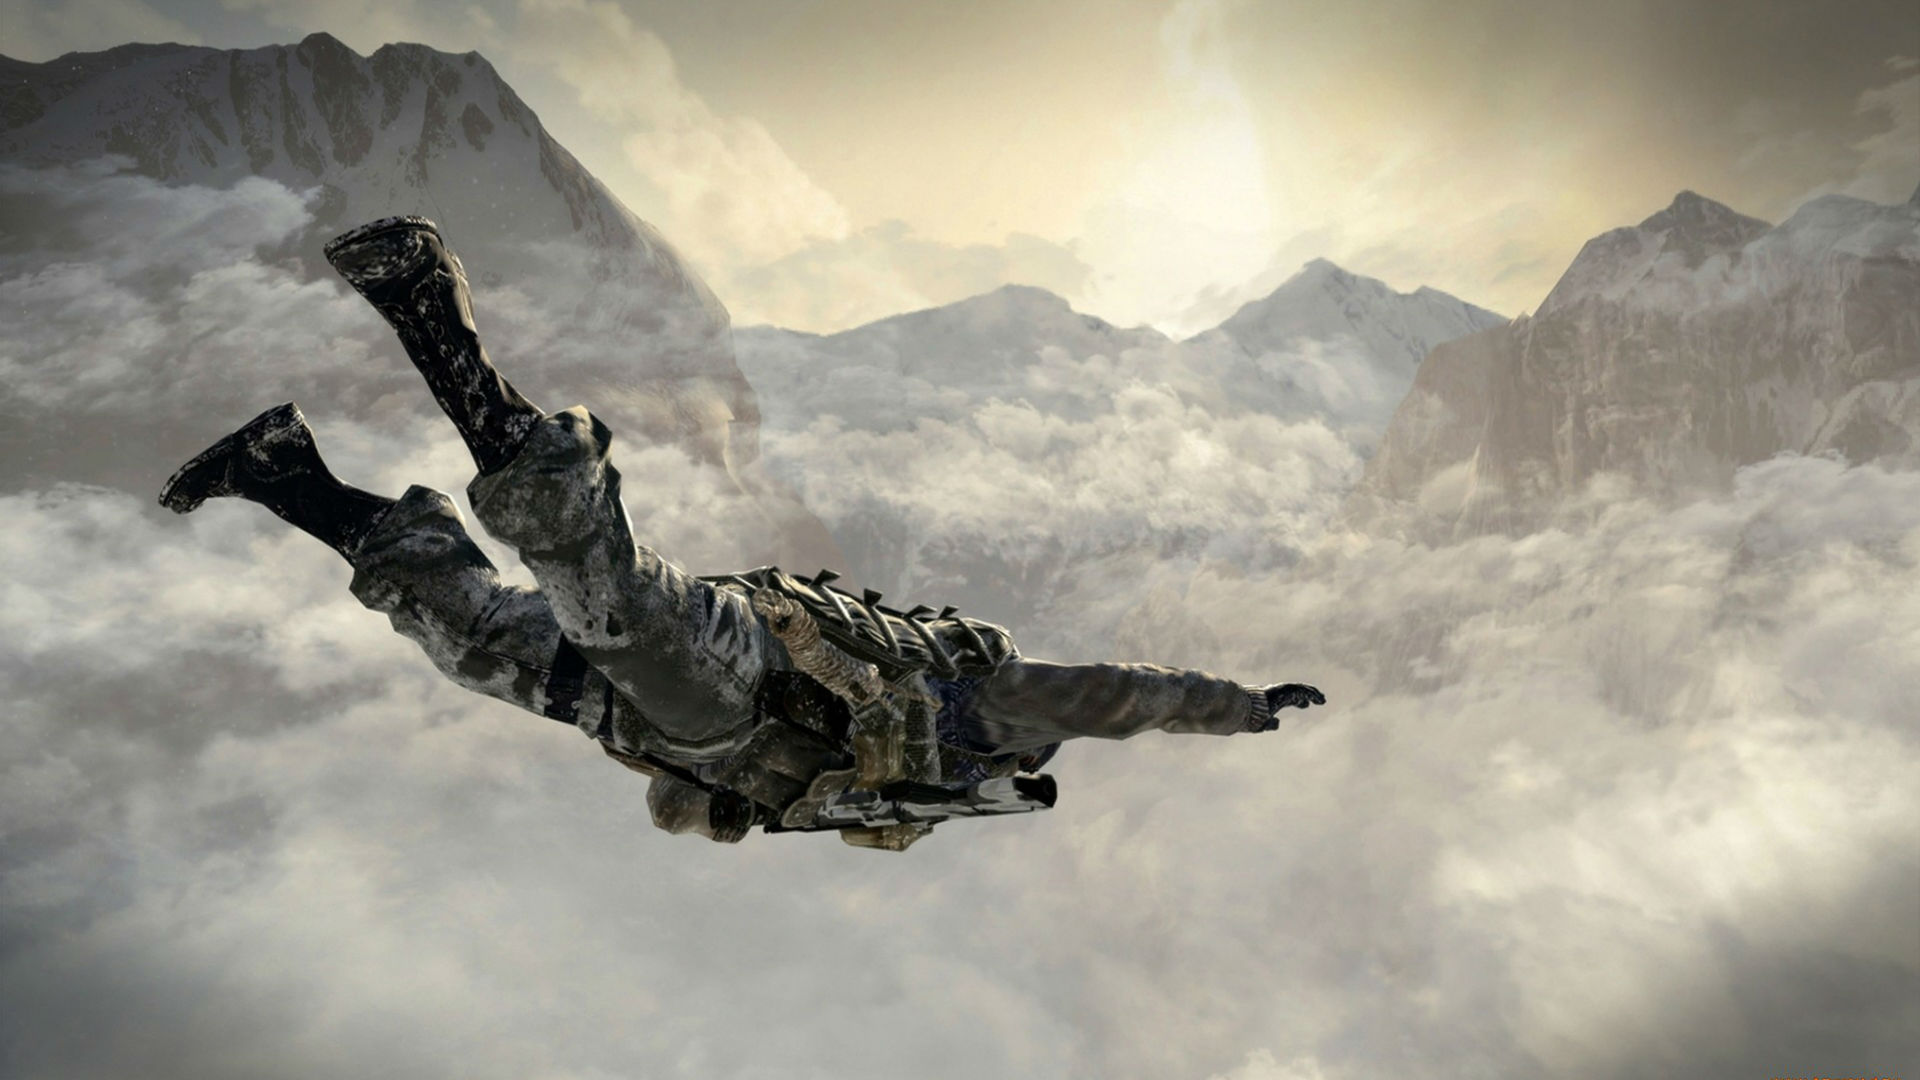 Call Of Duty Wallpapers, Pictures, Images